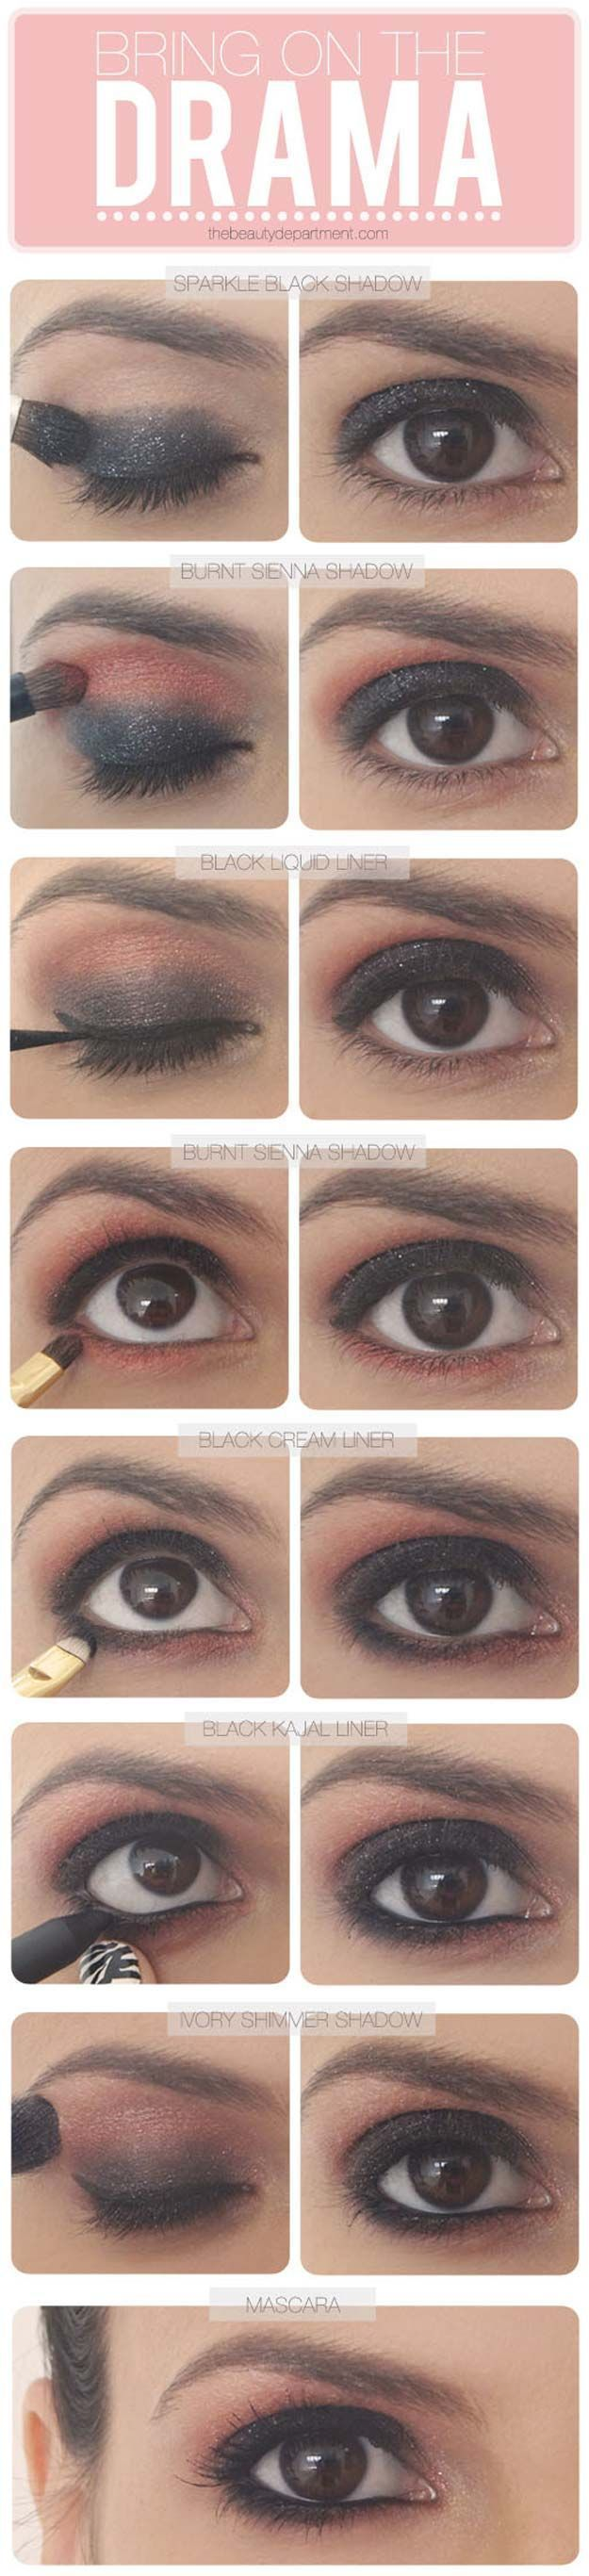 Sexy Eye Makeup Tutorials - Party Makeup Series: Eyes - Easy Guides on How To Do Smokey Looks and Look like one of the Linda Hallberg Bombshells - Sexy Looks for Brown, Blue, Hazel and Green Eyes - Dramatic Looks For Blondes and Brunettes - thegoddess.com/sexy-eye-makeup-tutorials #makeuplooksforblondes